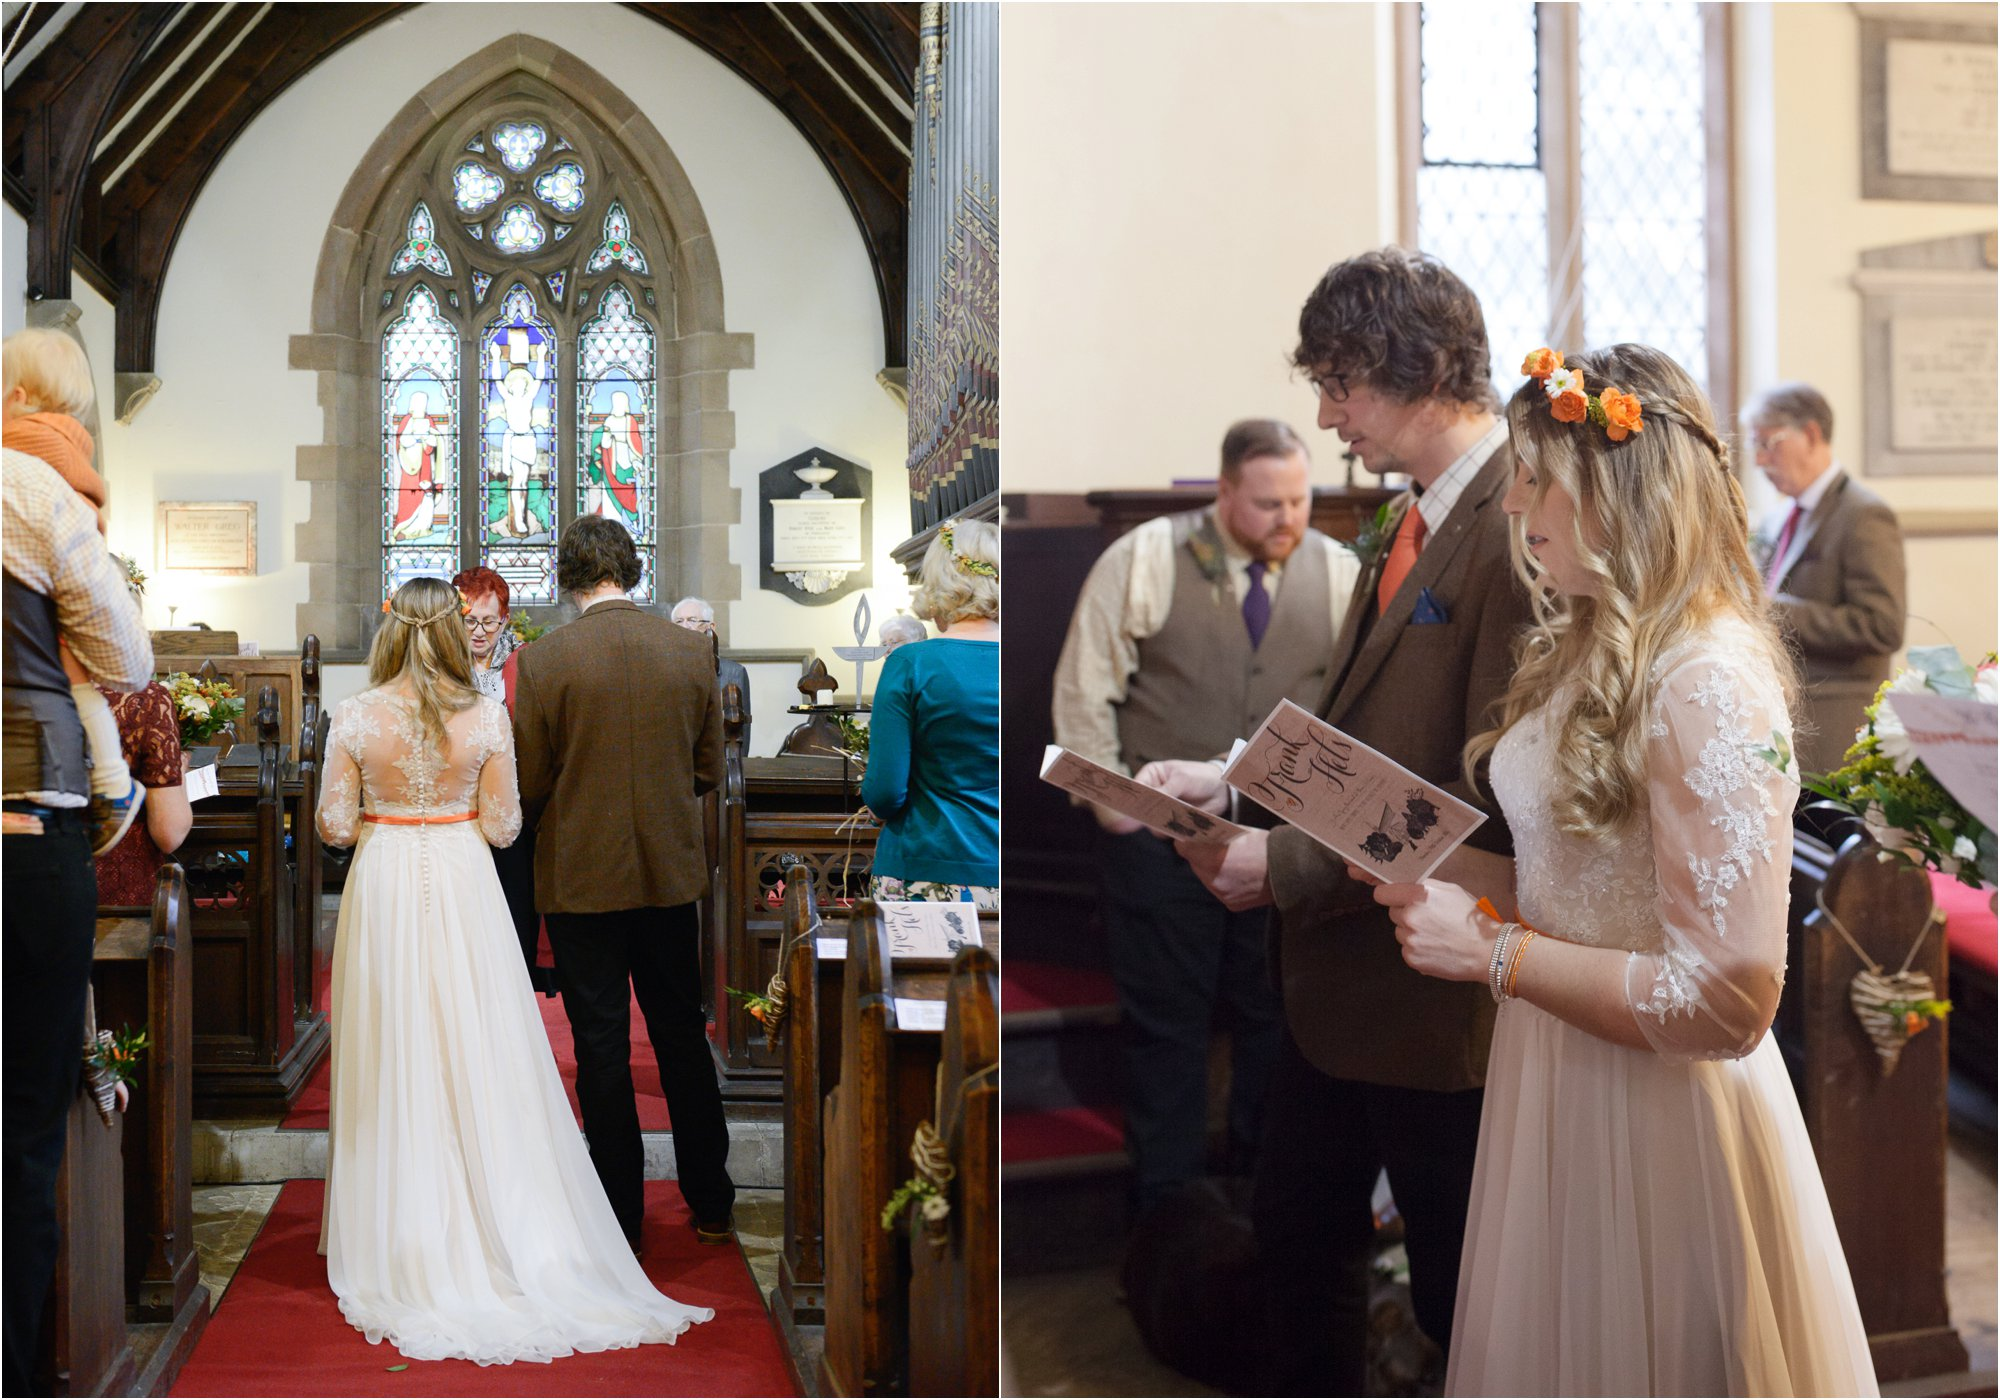 Styal_Wedding_Wilmslow_Cheshire_Autumn_Colourful_photography_0085.jpg